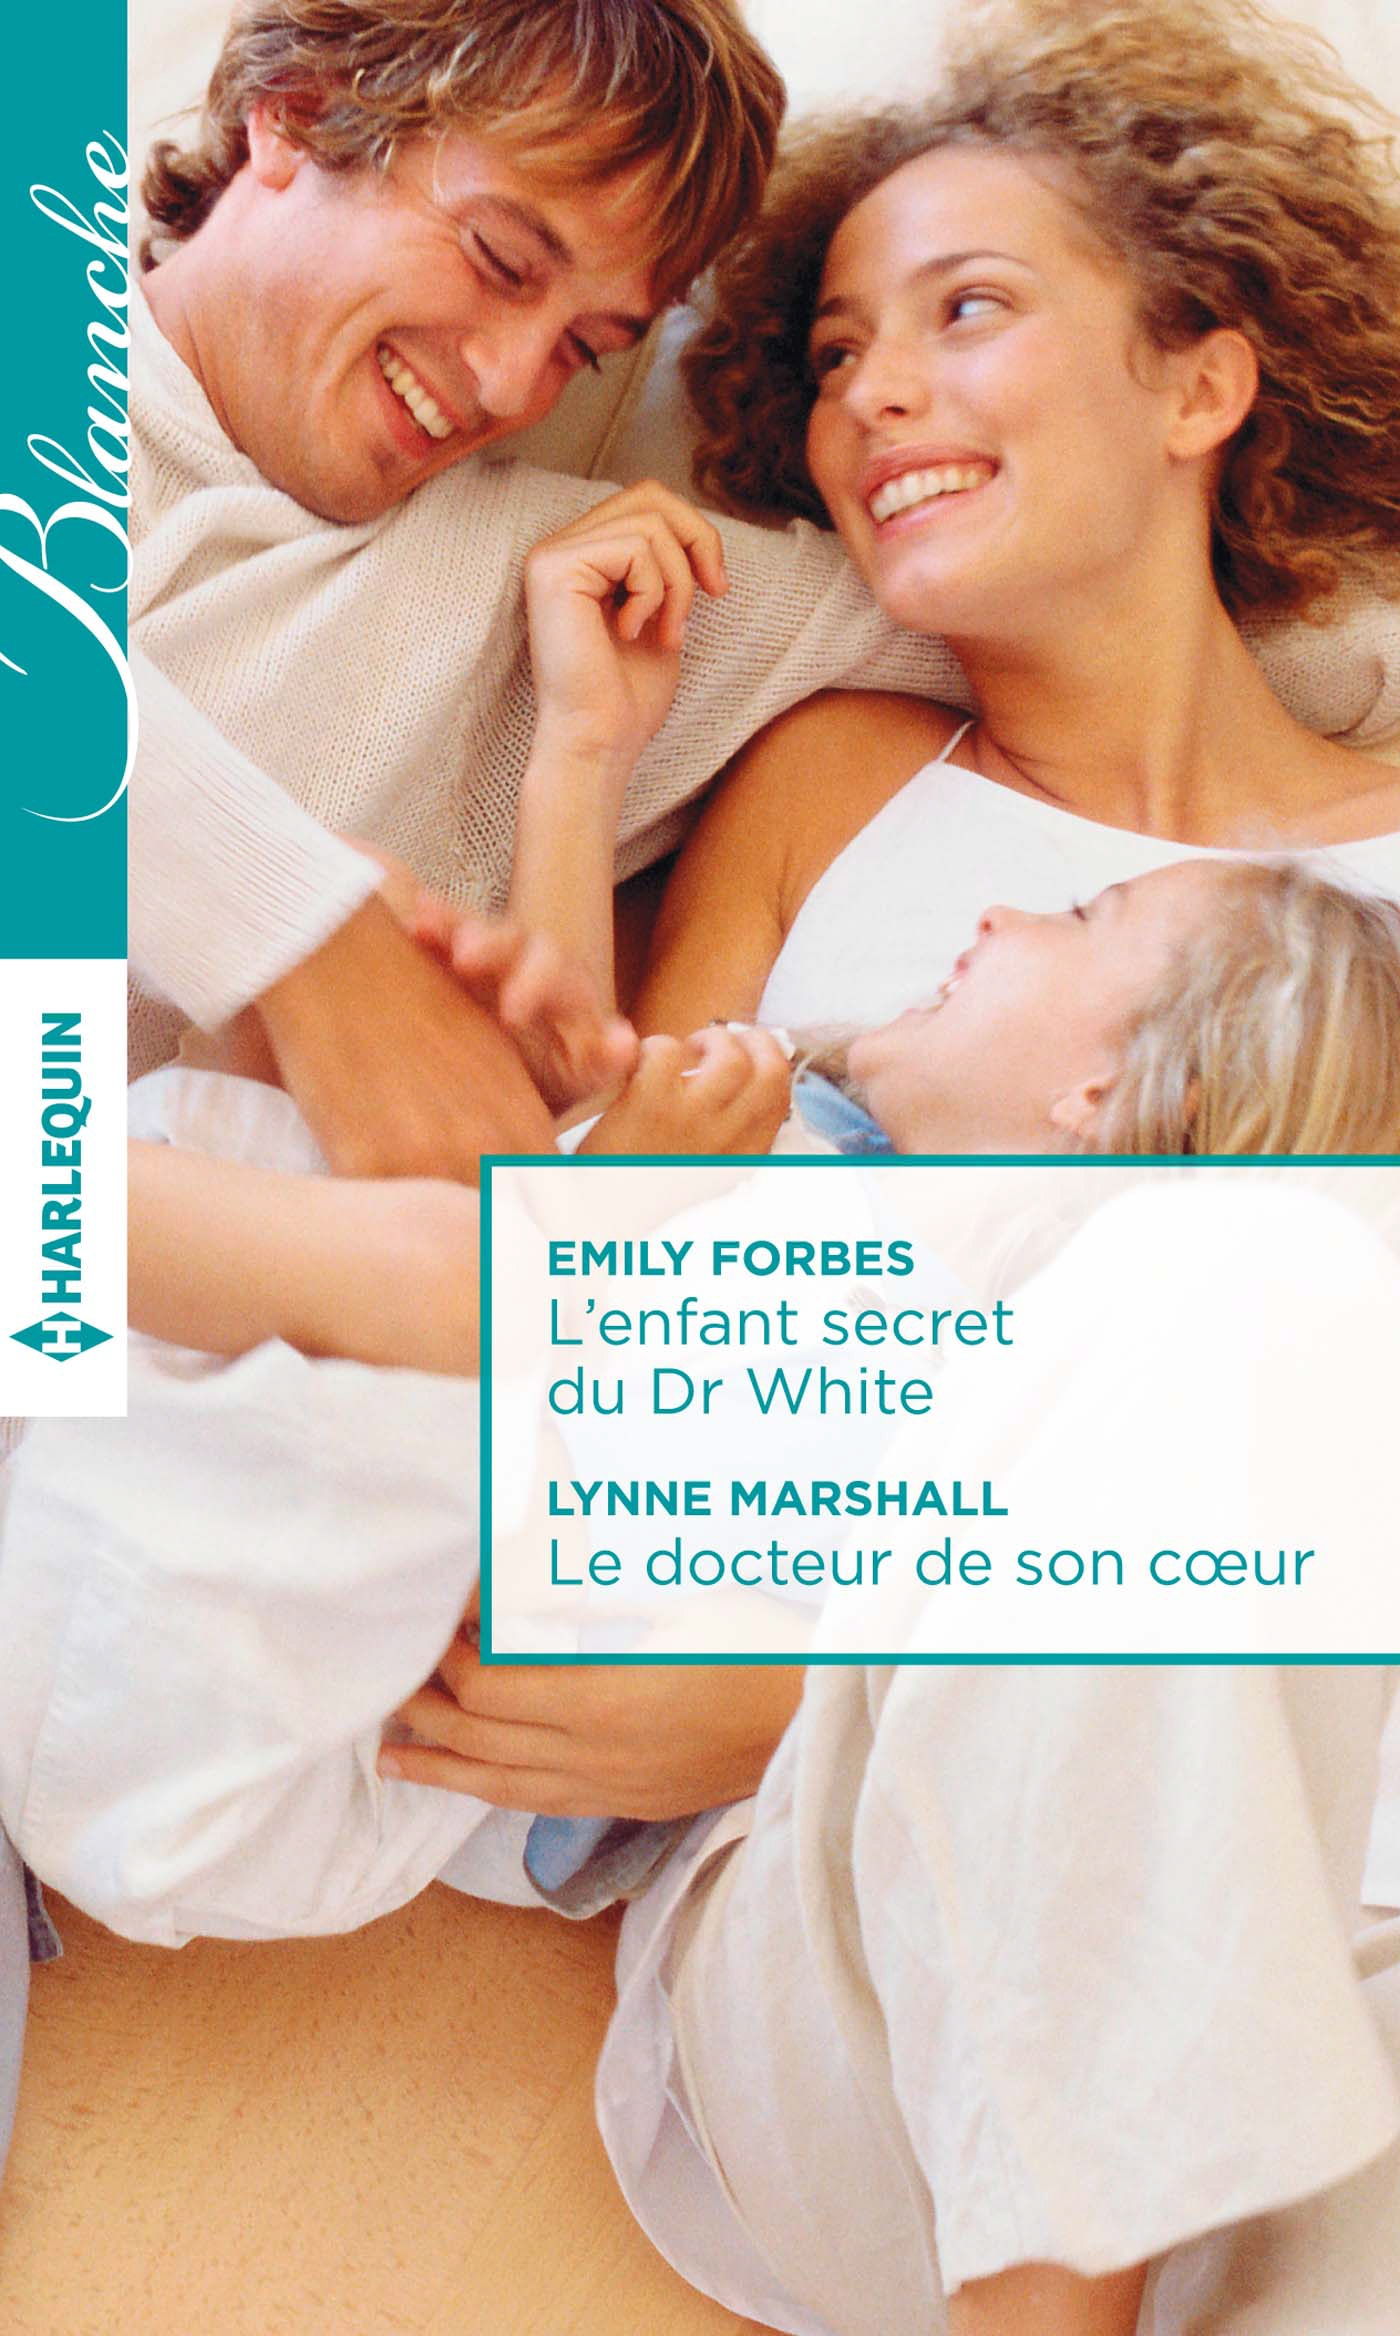 L'enfant secret du Dr White - Le docteur de son coeur